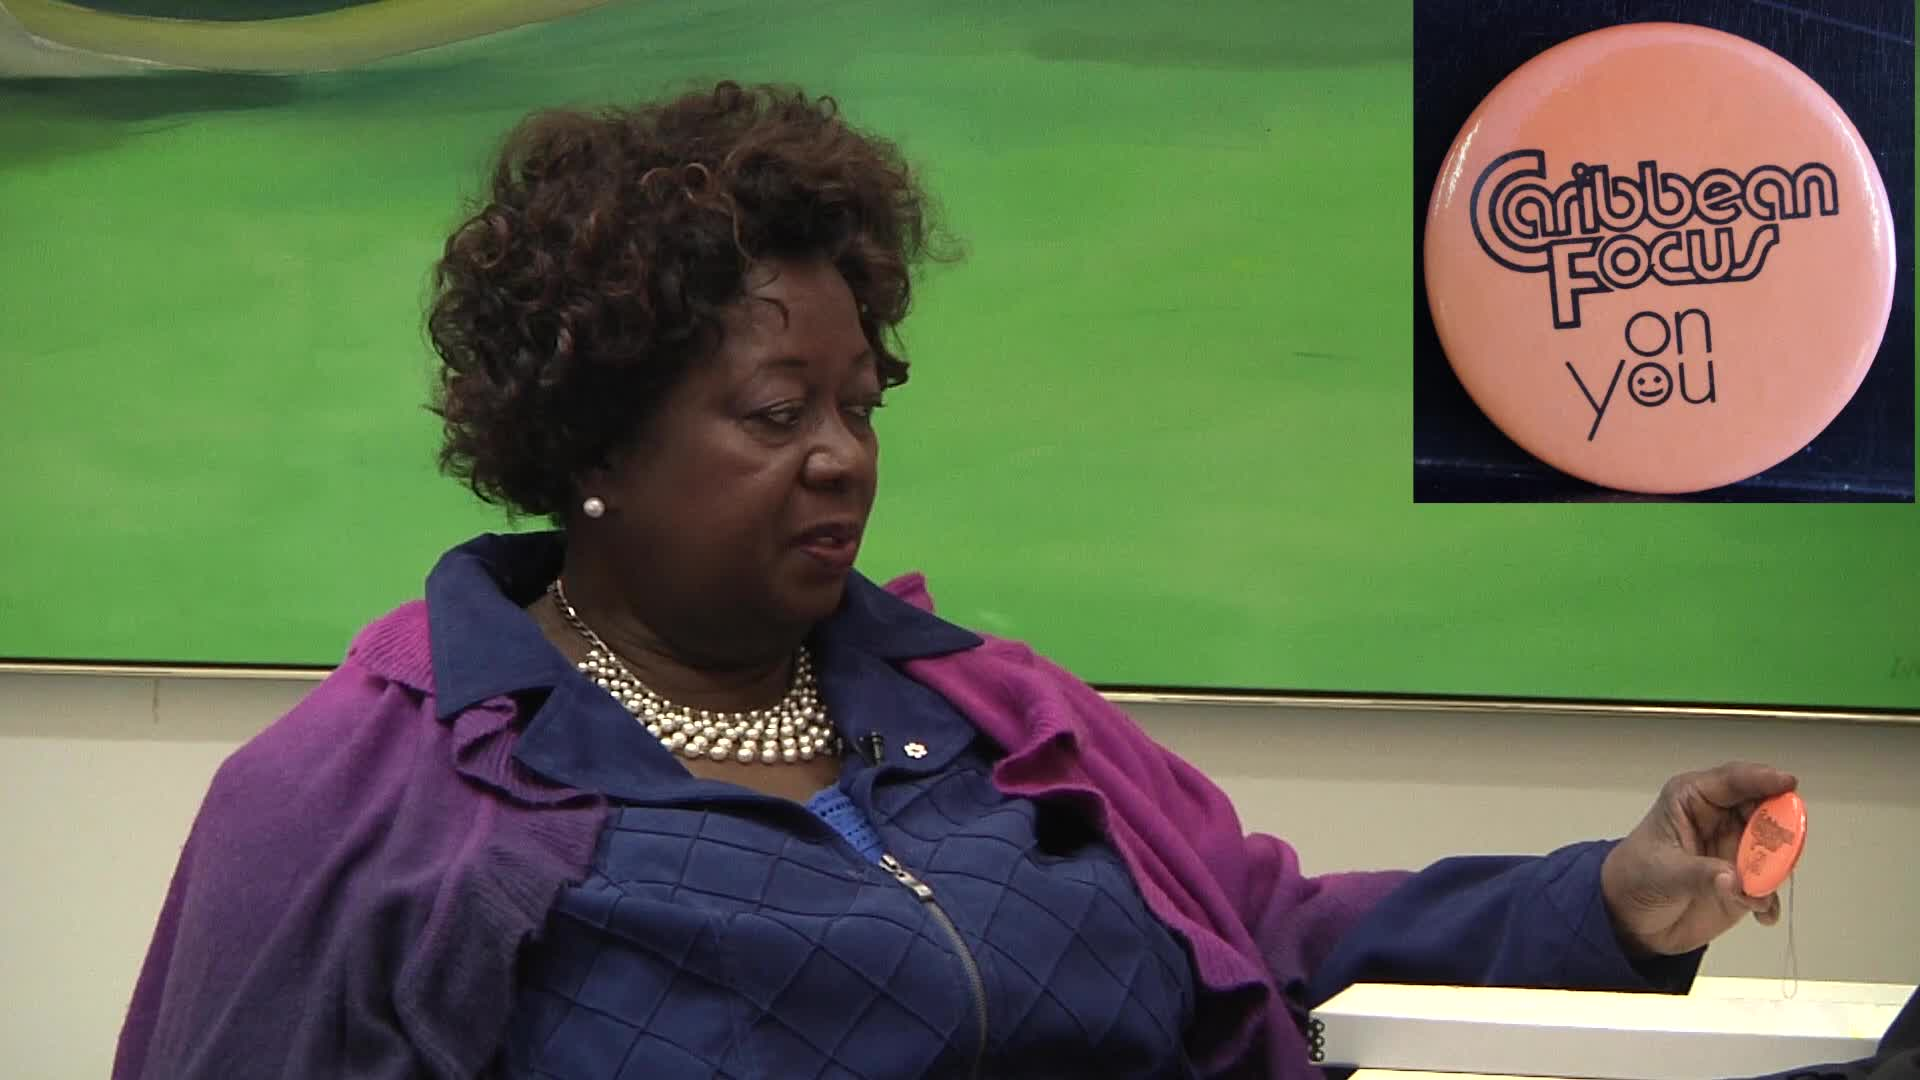 Jean Augustine interview: Caribbean Focus on you button